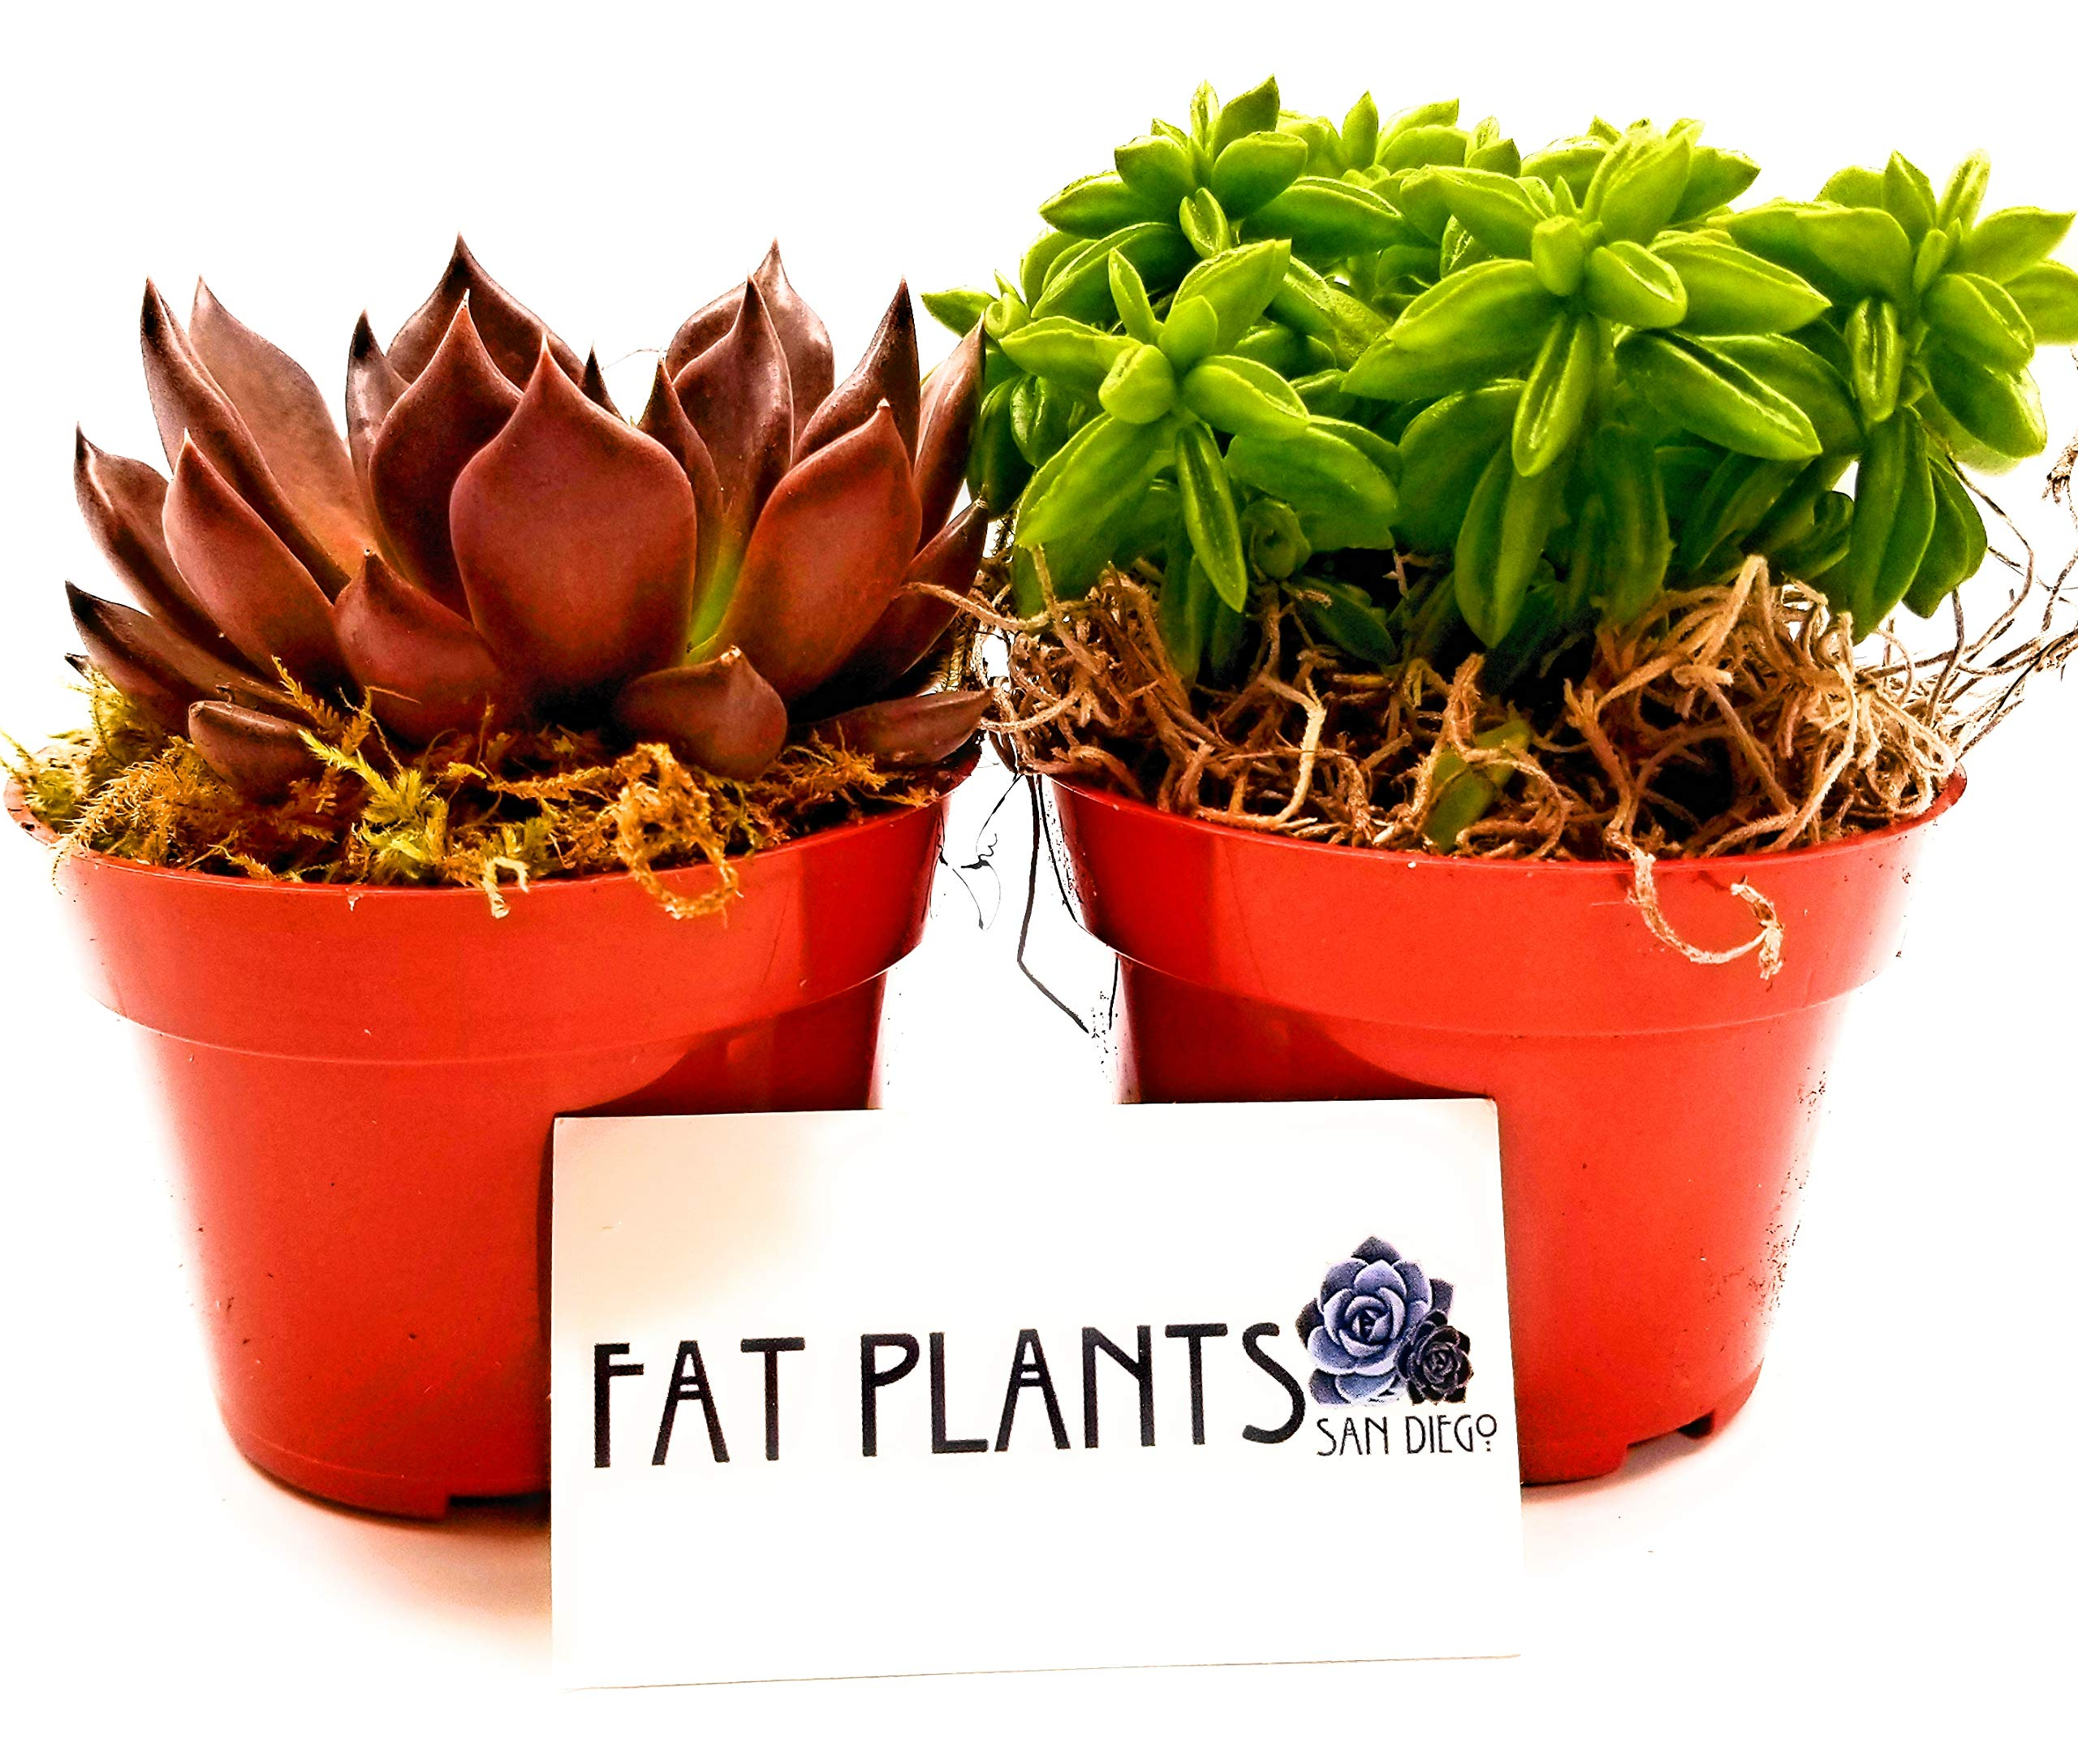 Fat Plants San Diego Live Succulent Plant Variety Collection by Fat Plants San Diego (Image #1)